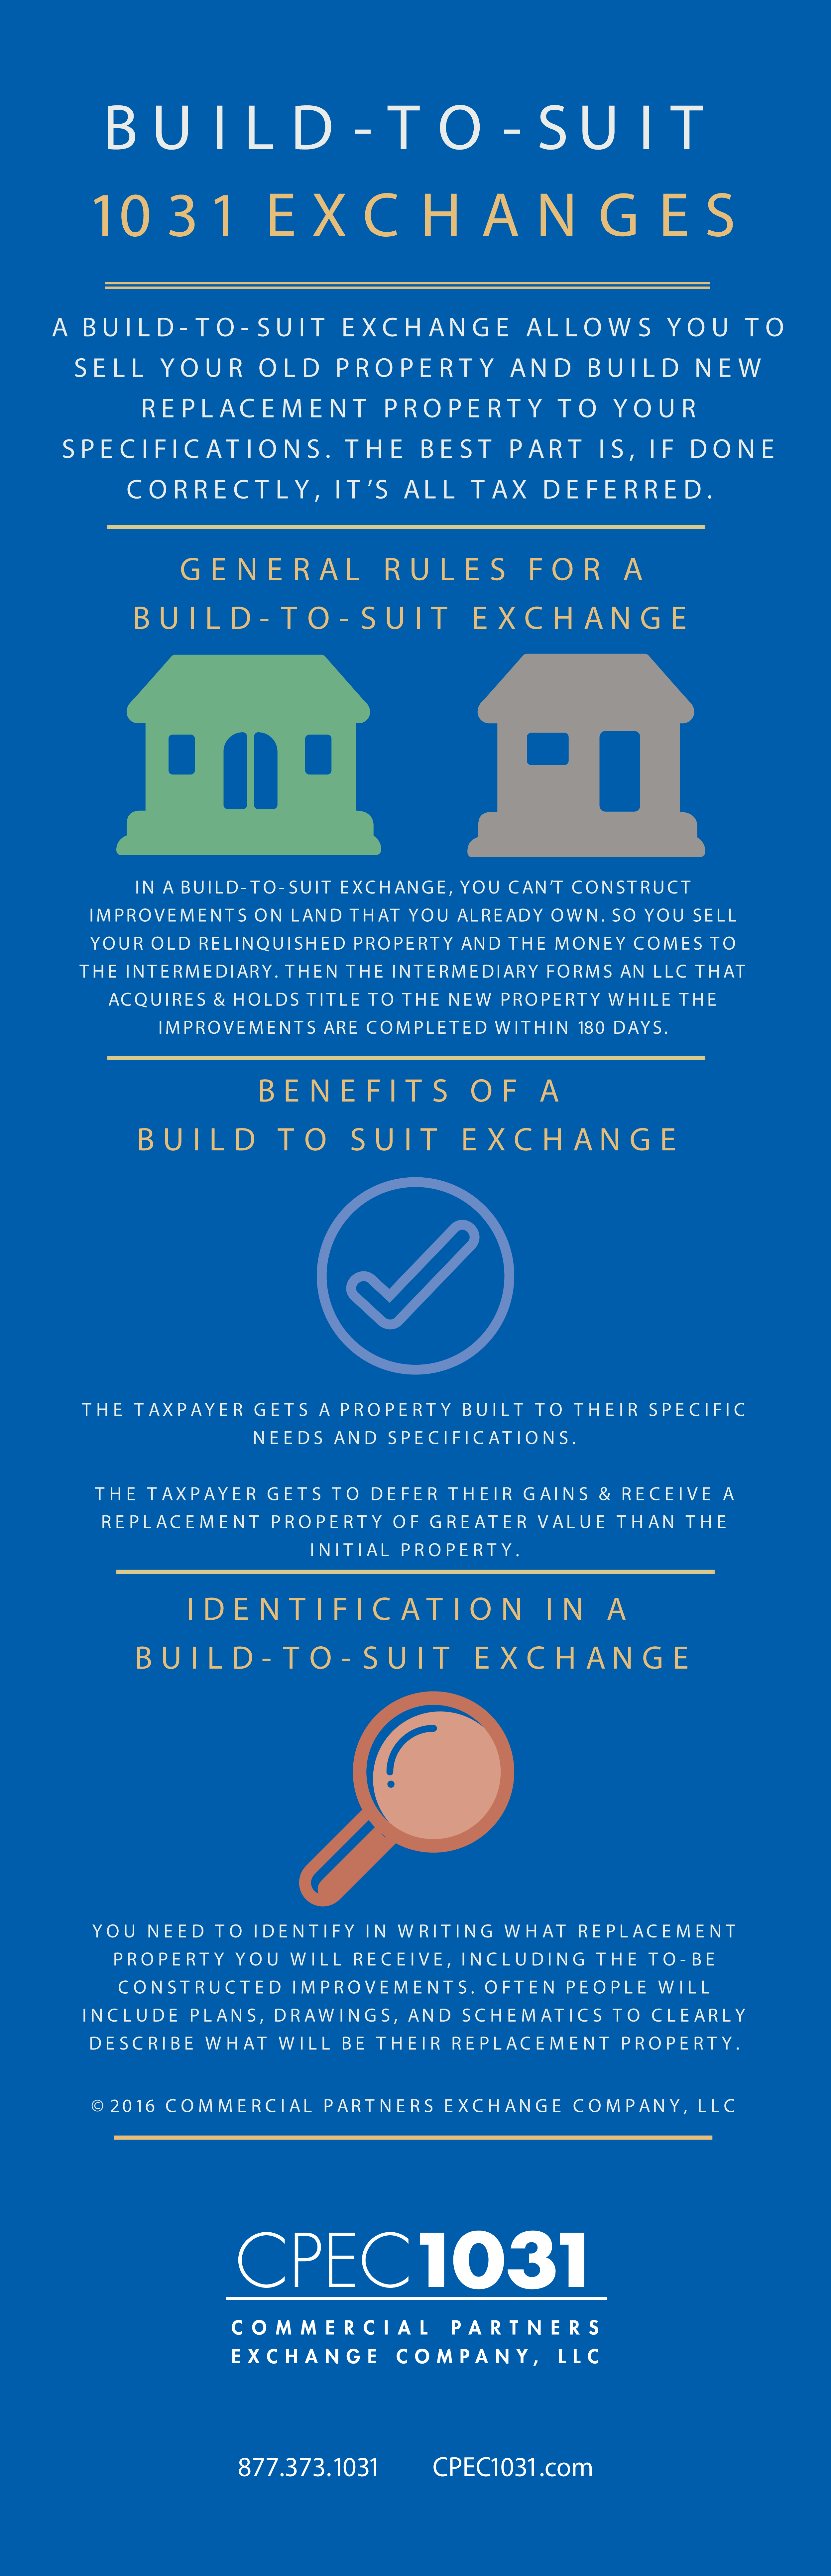 build-to-suit exchange infographic